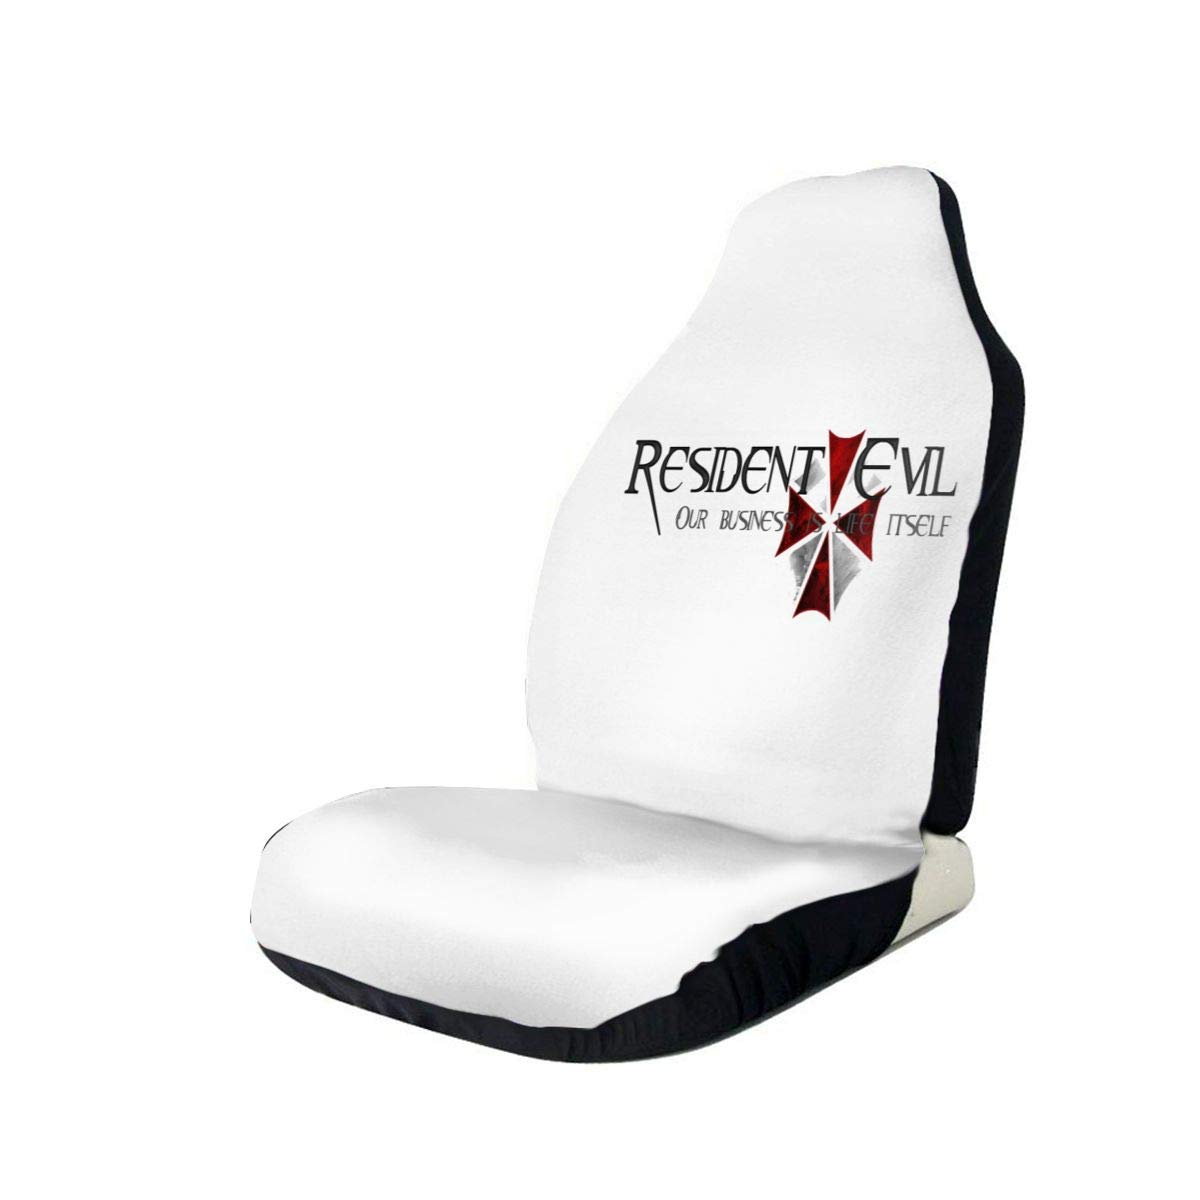 Umbrella Resident Evil Car Seat Covers Car Seat Protector Covers ,Fit Most Cars, Sedan, SUV,Van